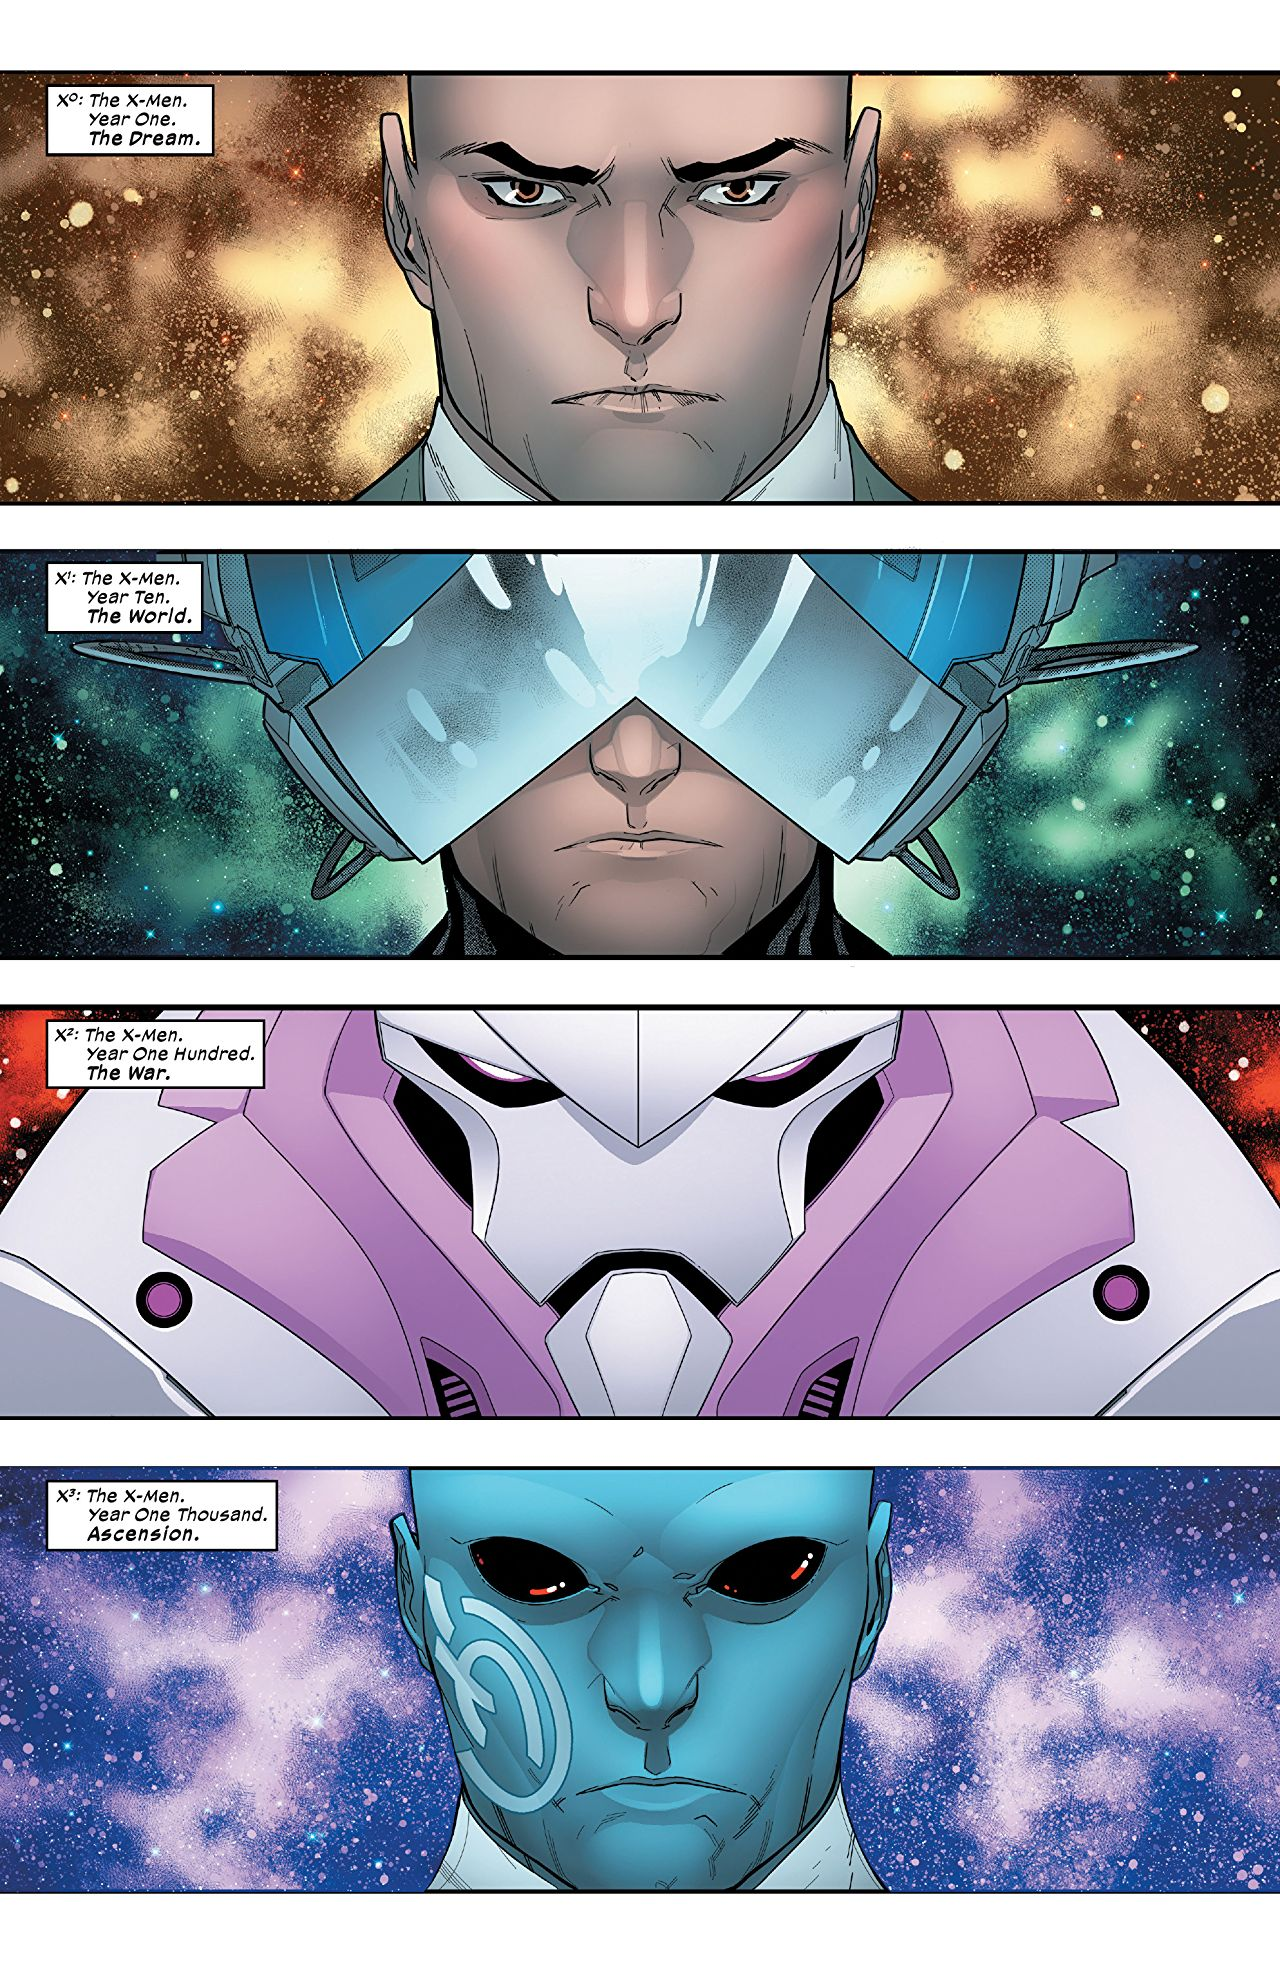 Near Mint – Powers of X #1 — Episode 2 of 12